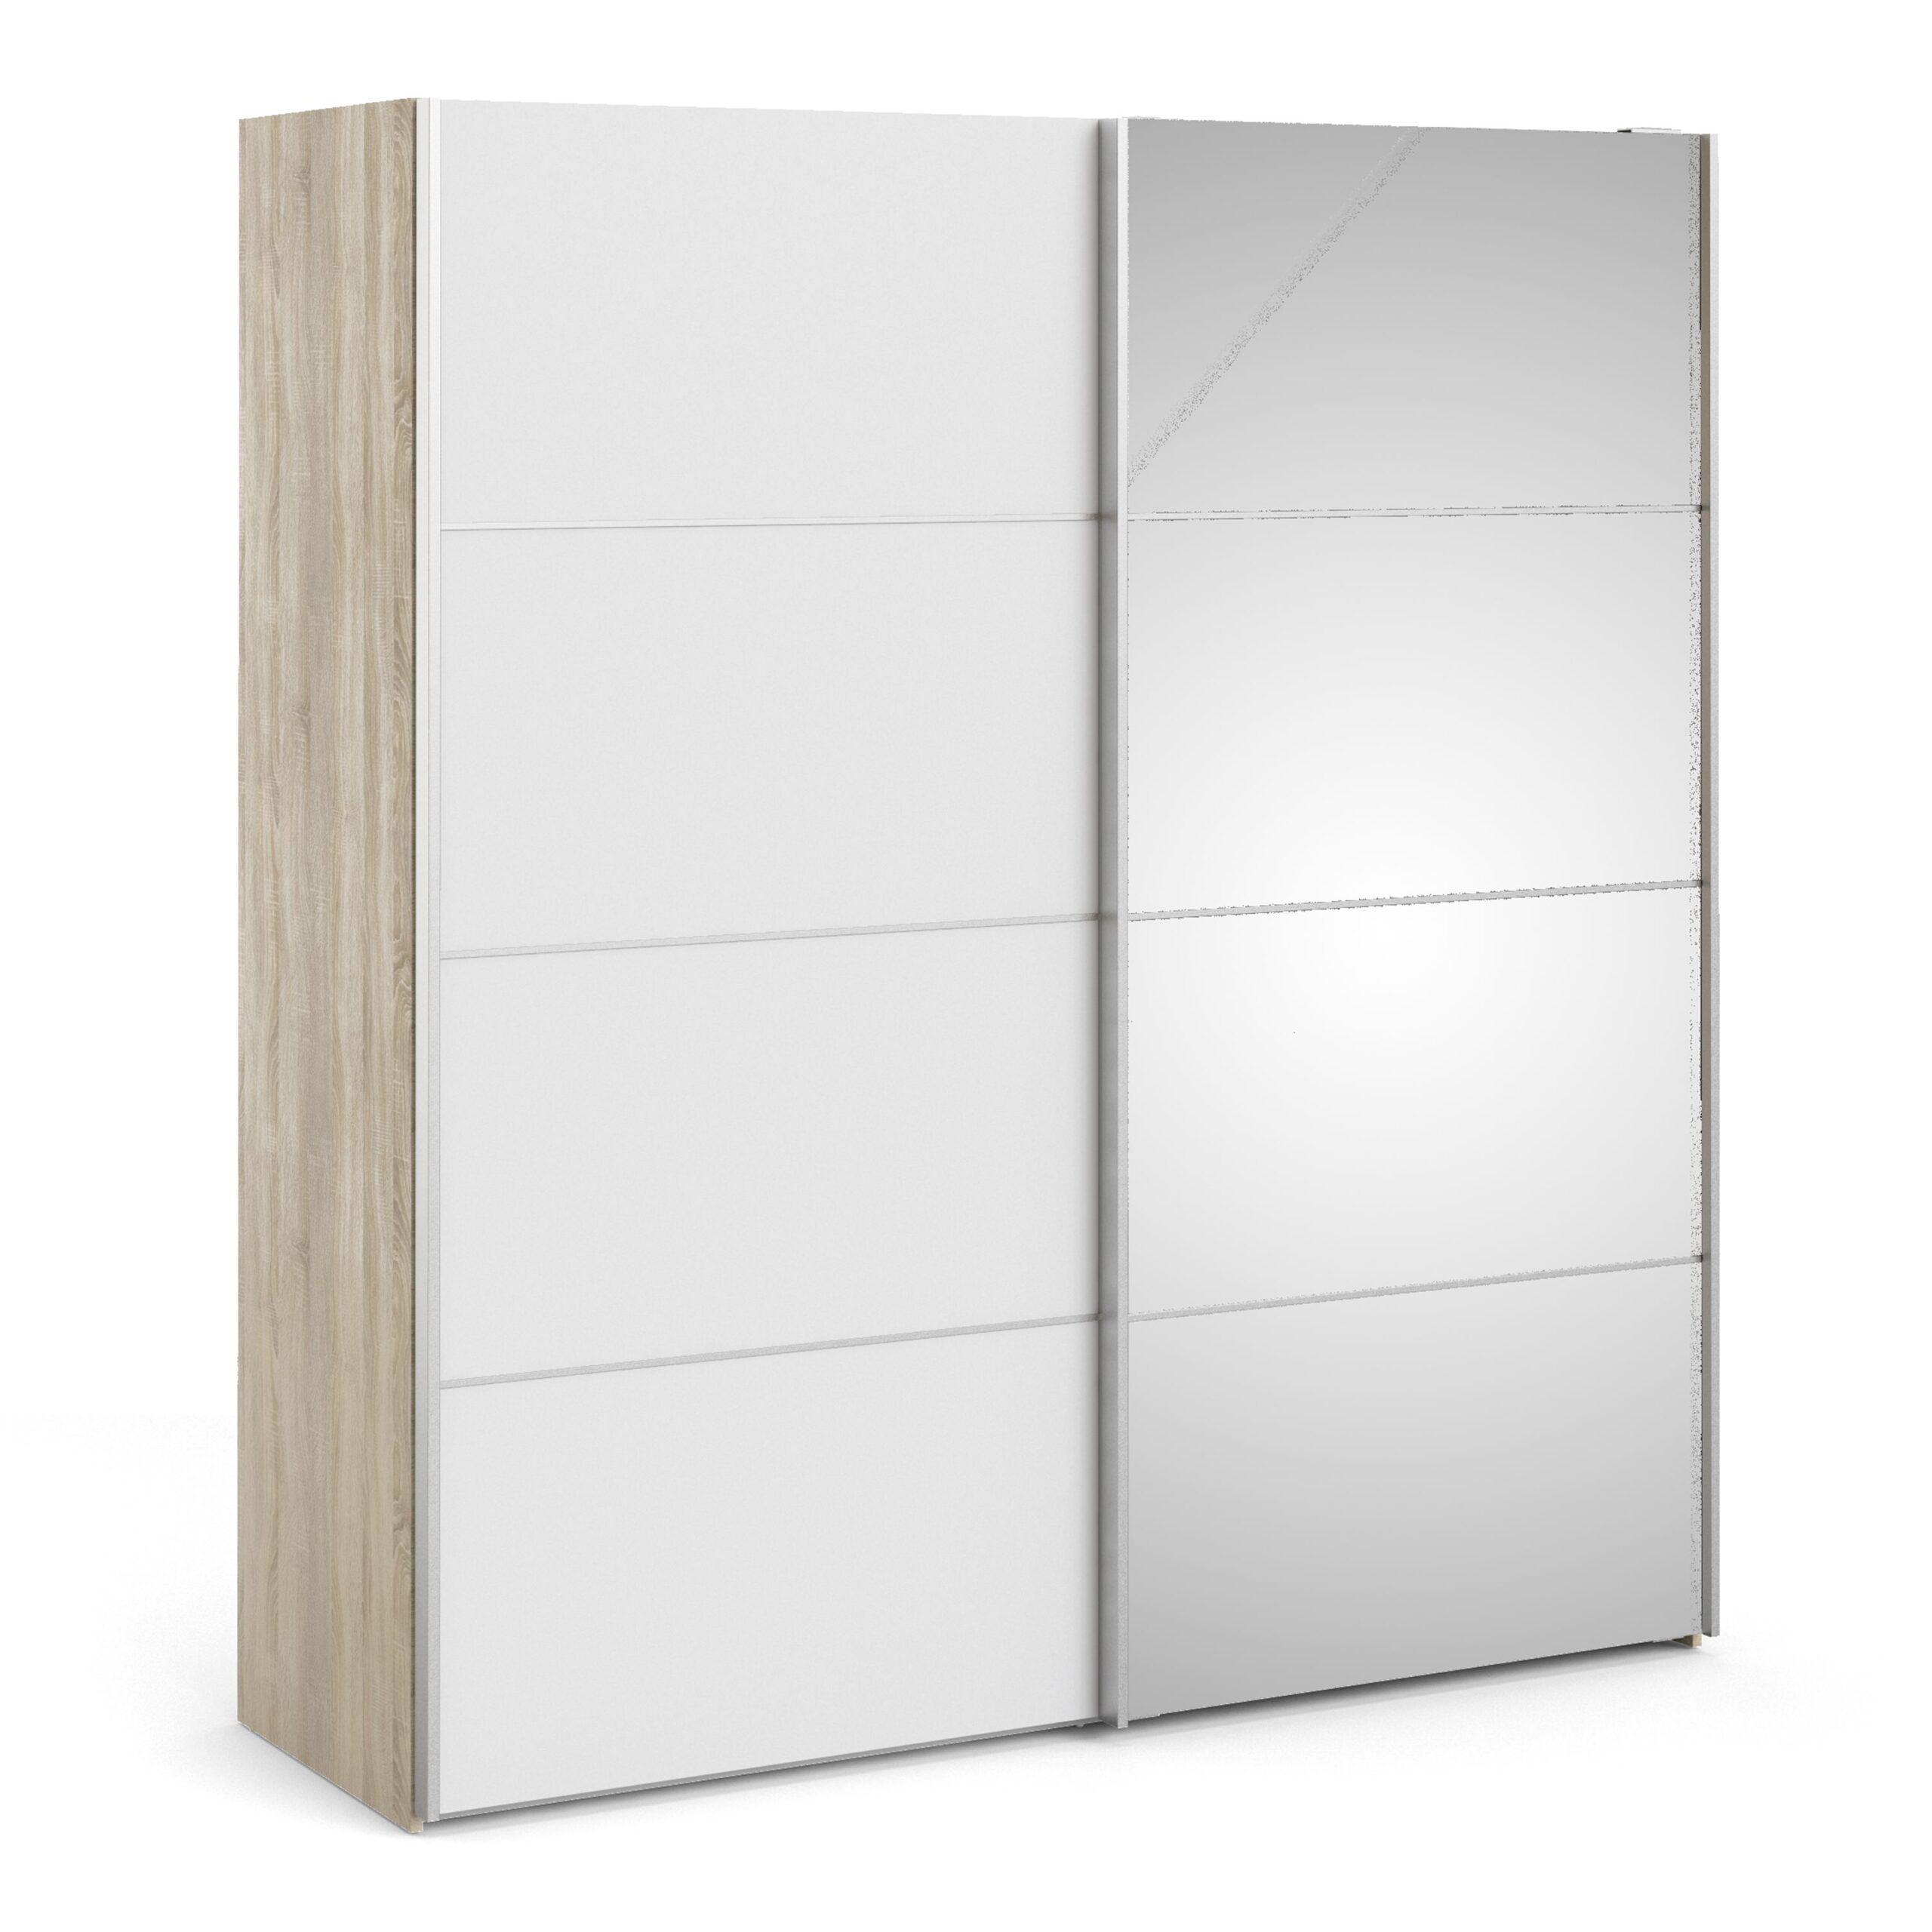 Phillipe Sliding Wardrobe 180cm In Oak With White And Mirror Doors With Five Shelves